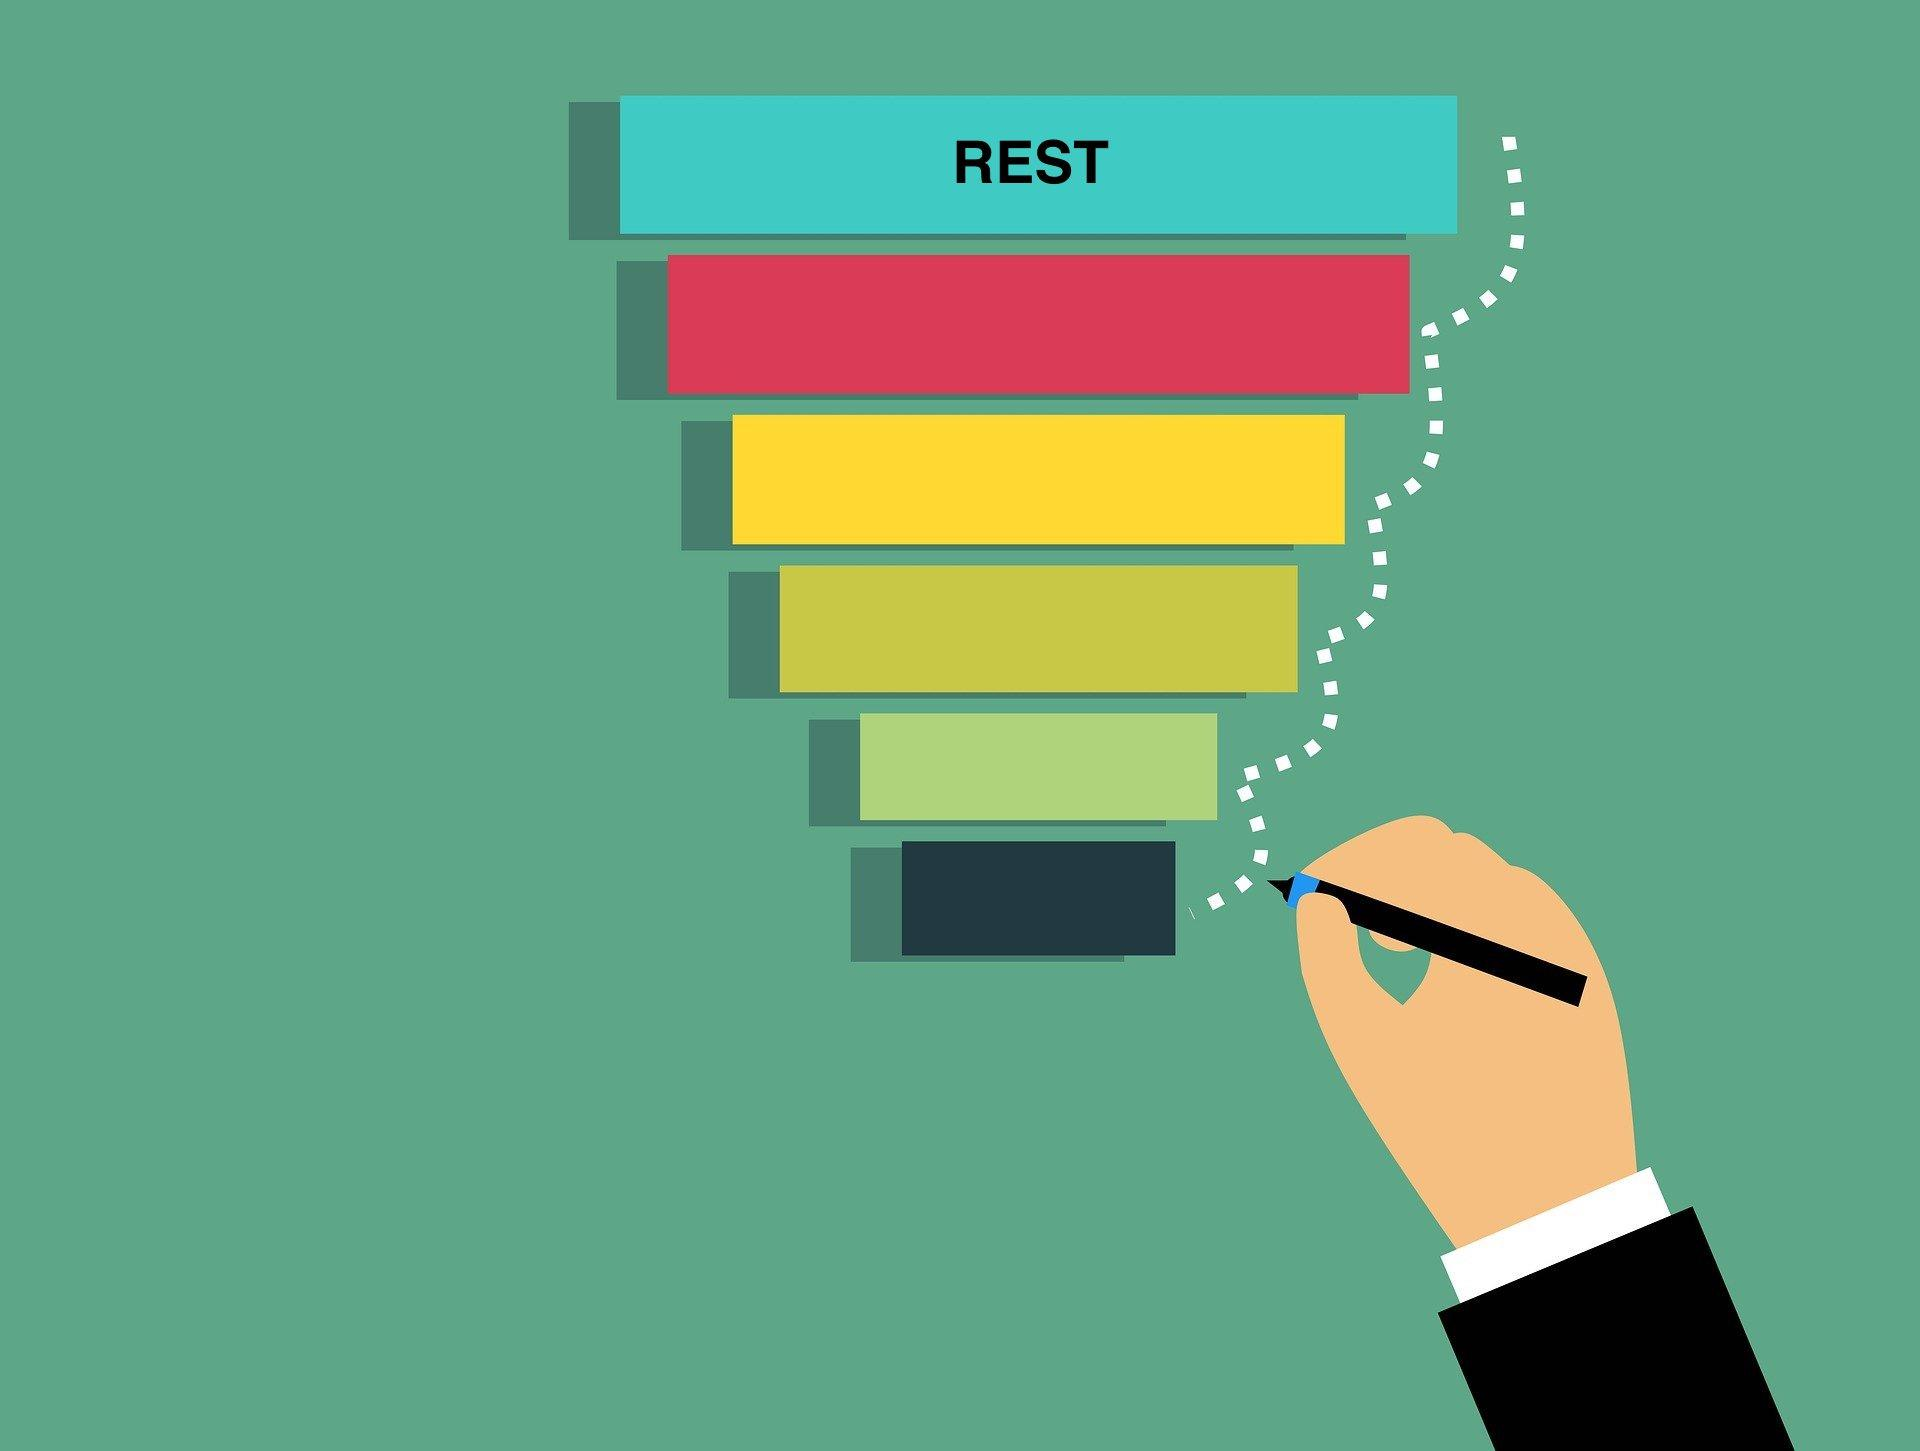 Rest days: Good rest is the foundation for well-being